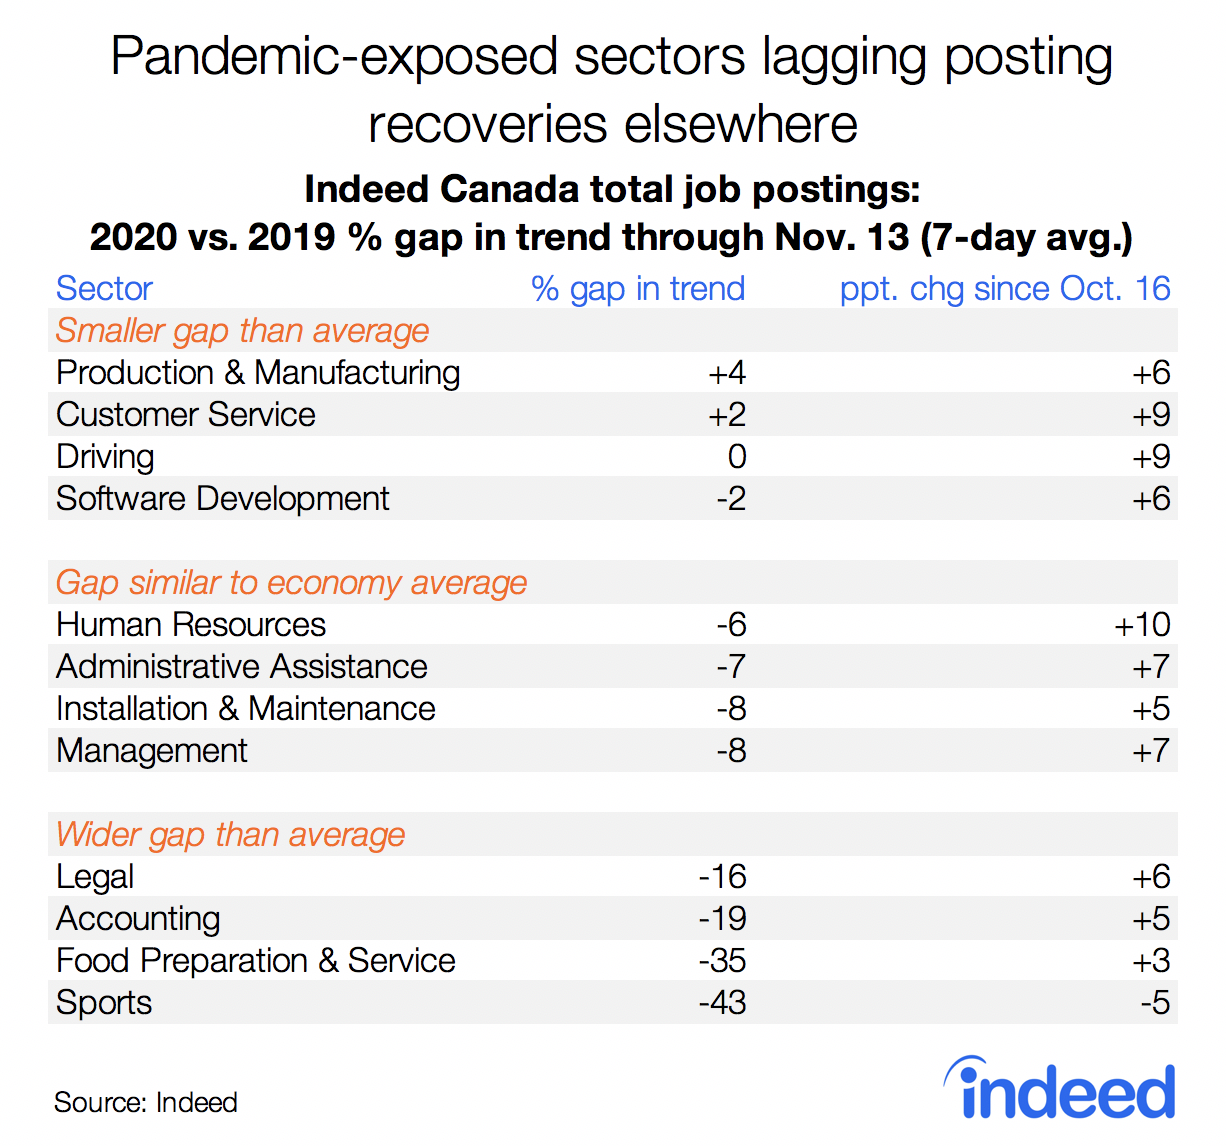 Table showing pandemic-exposed sectors lagging posting recoveries elsewhere